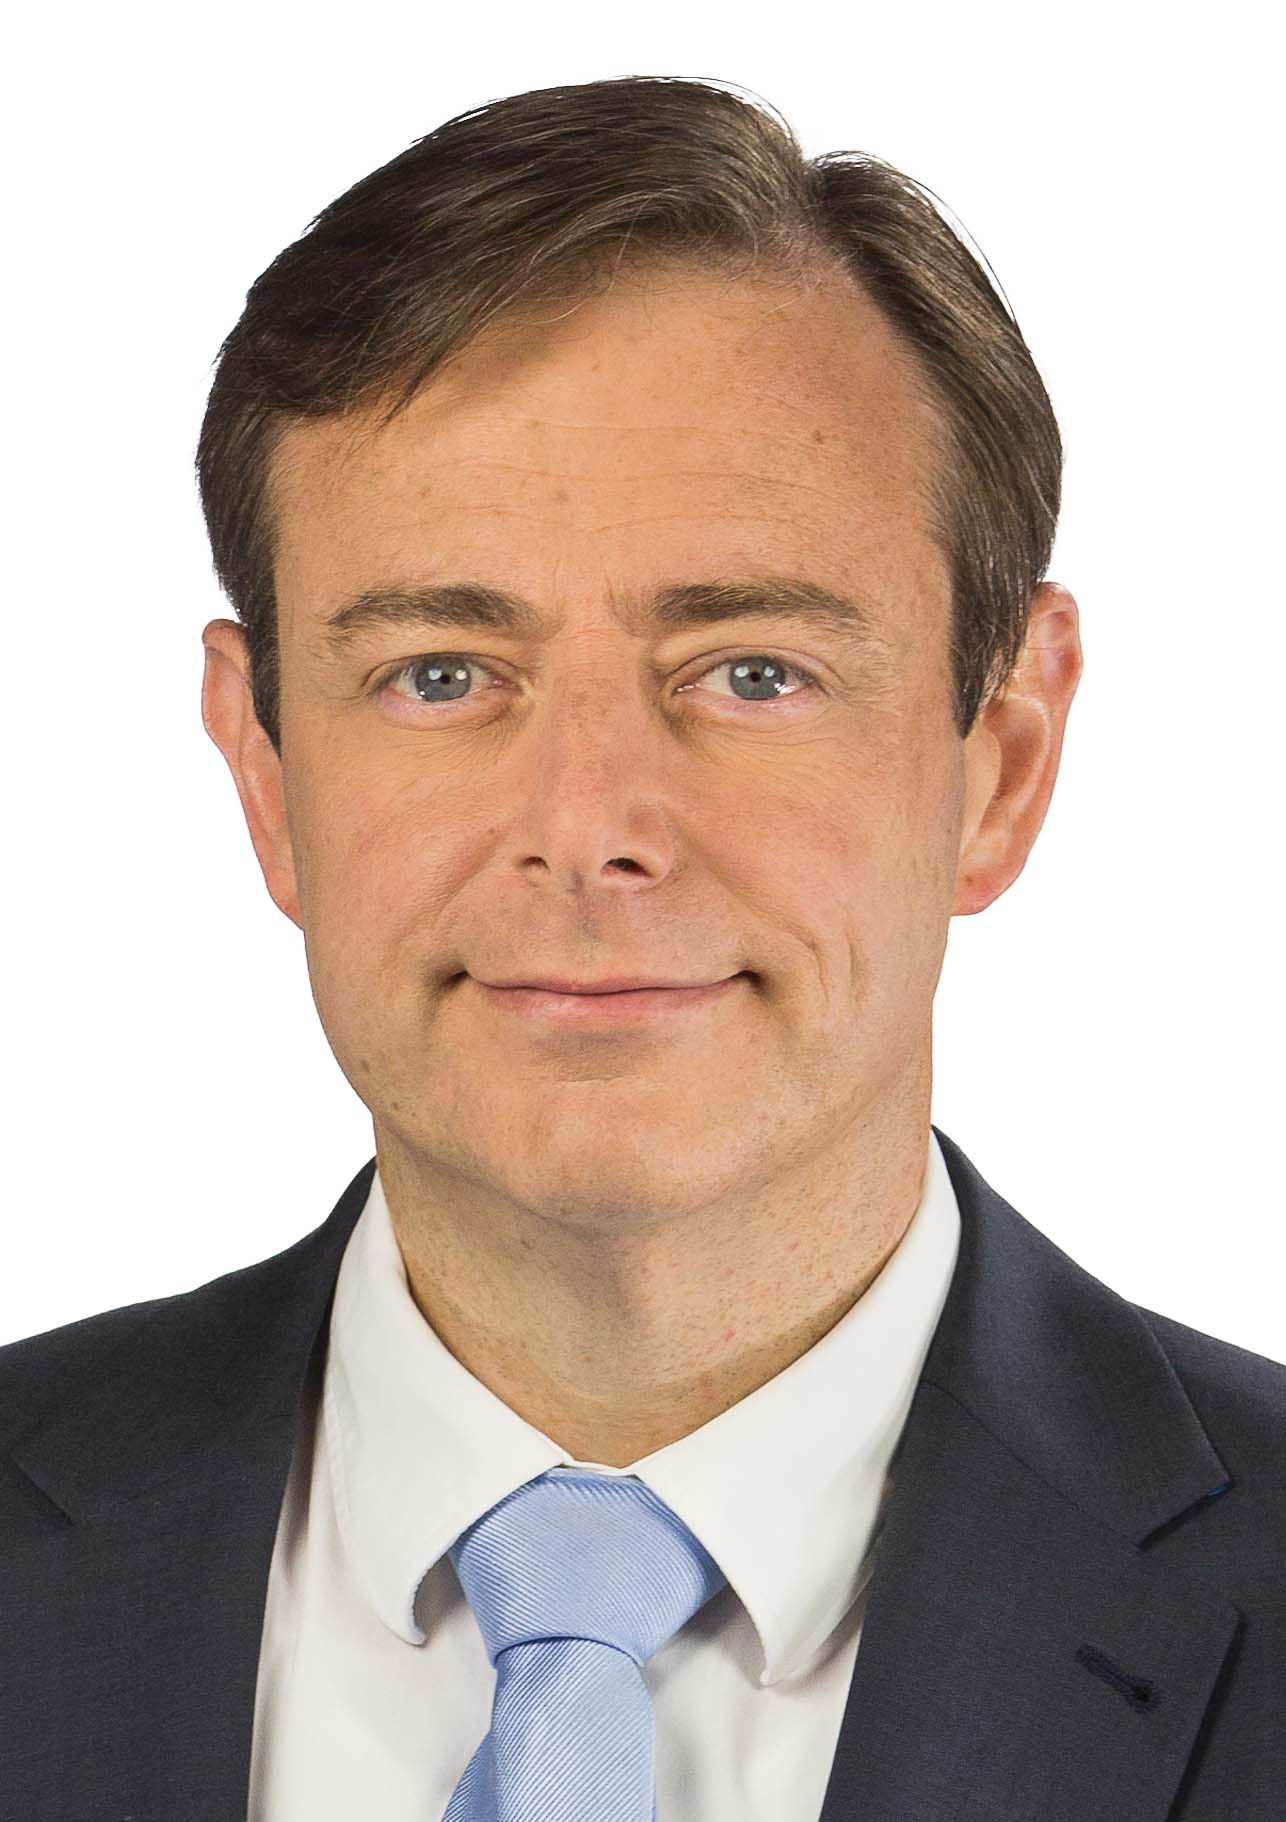 The 46-year old son of father Henri De Wever and mother(?), 179 cm tall Bart de Wever in 2017 photo